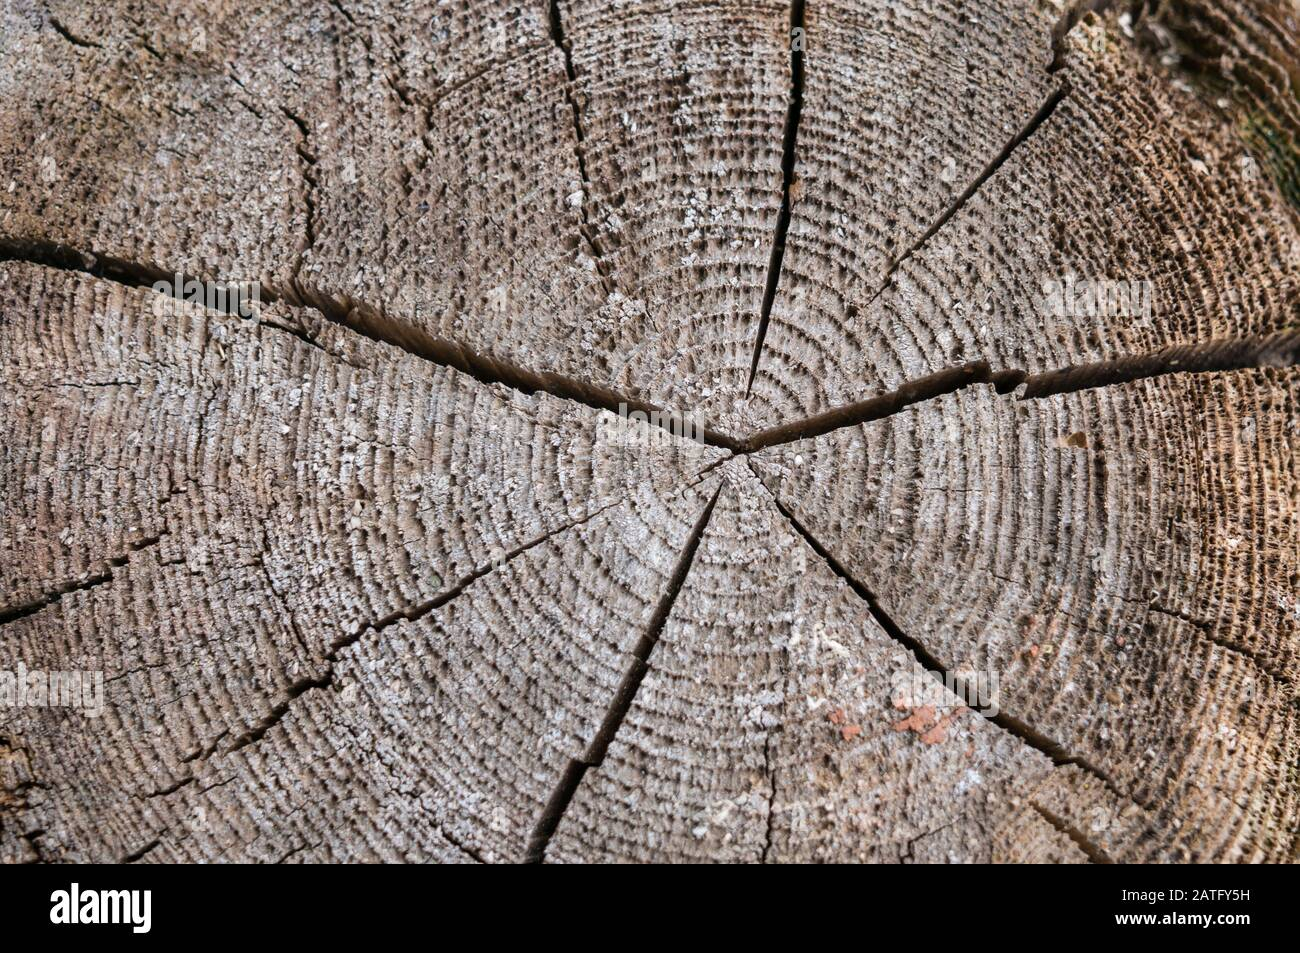 A slice of an old tree with concentric annual rings and a crack in the center. The texture of the old tree. Stock Photo